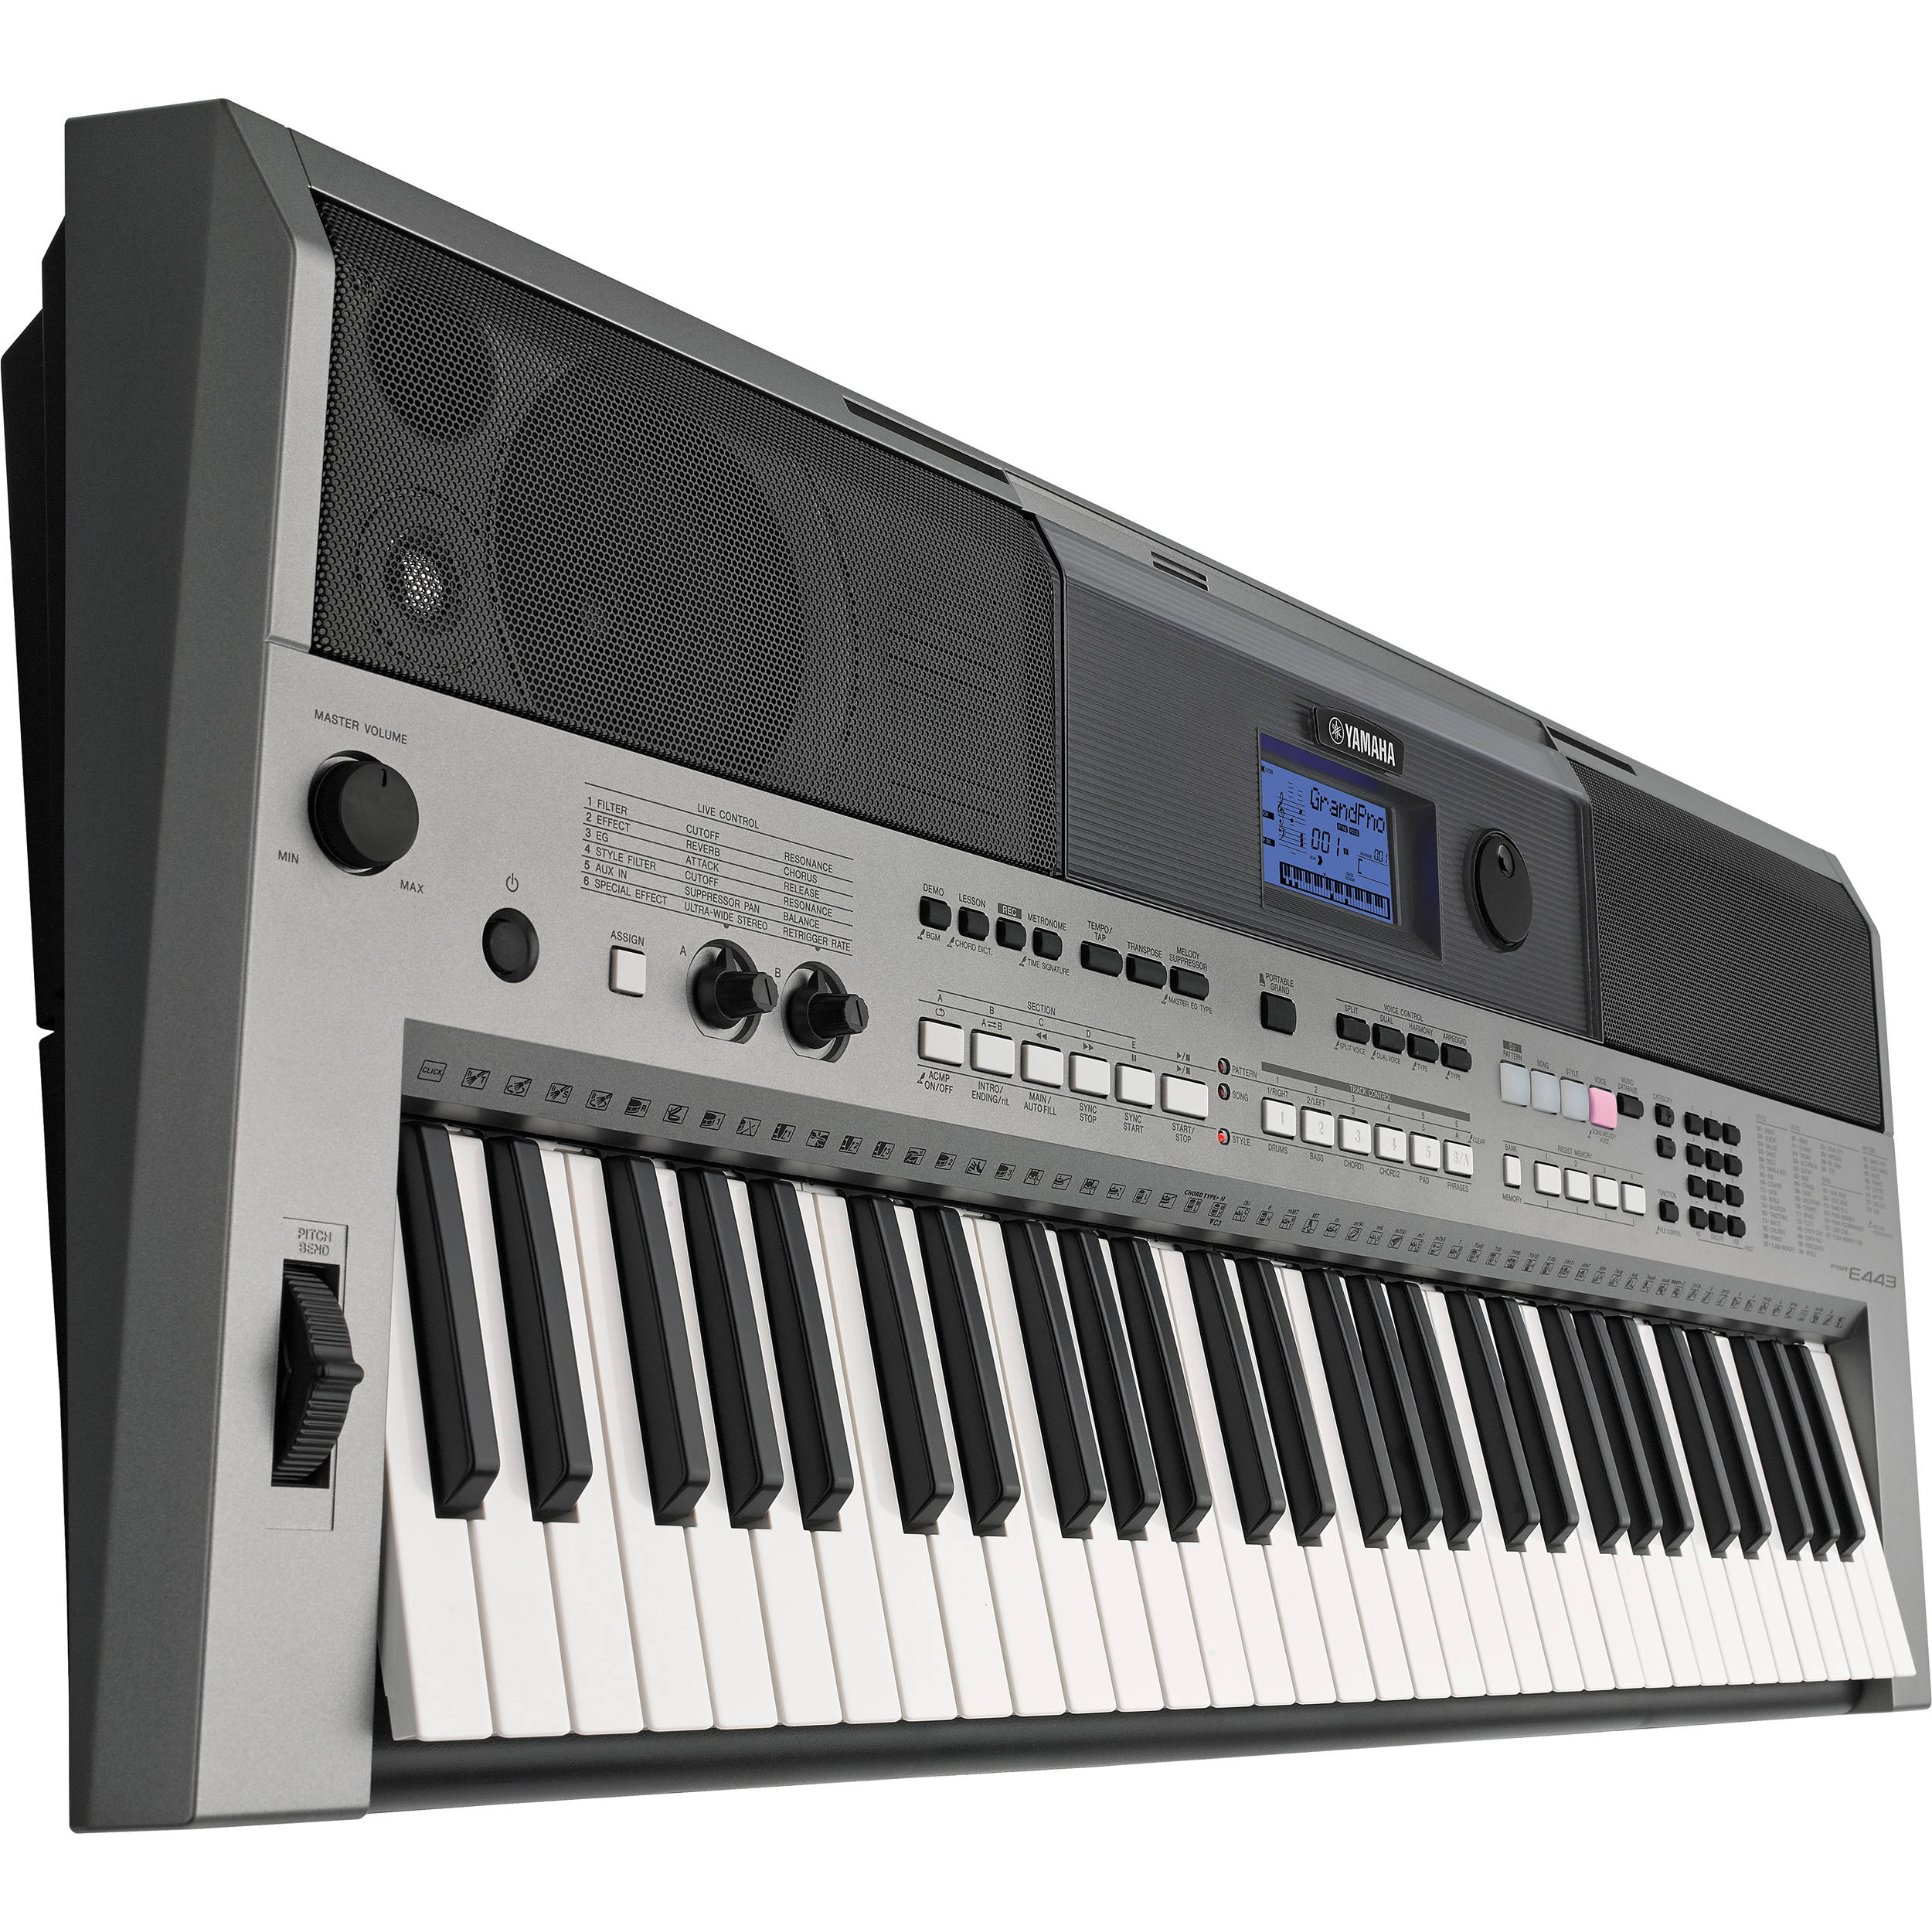 Yamaha Psr E443 : yamaha psr e443 61 key portable keyboard psre443 b h photo video ~ Vivirlamusica.com Haus und Dekorationen